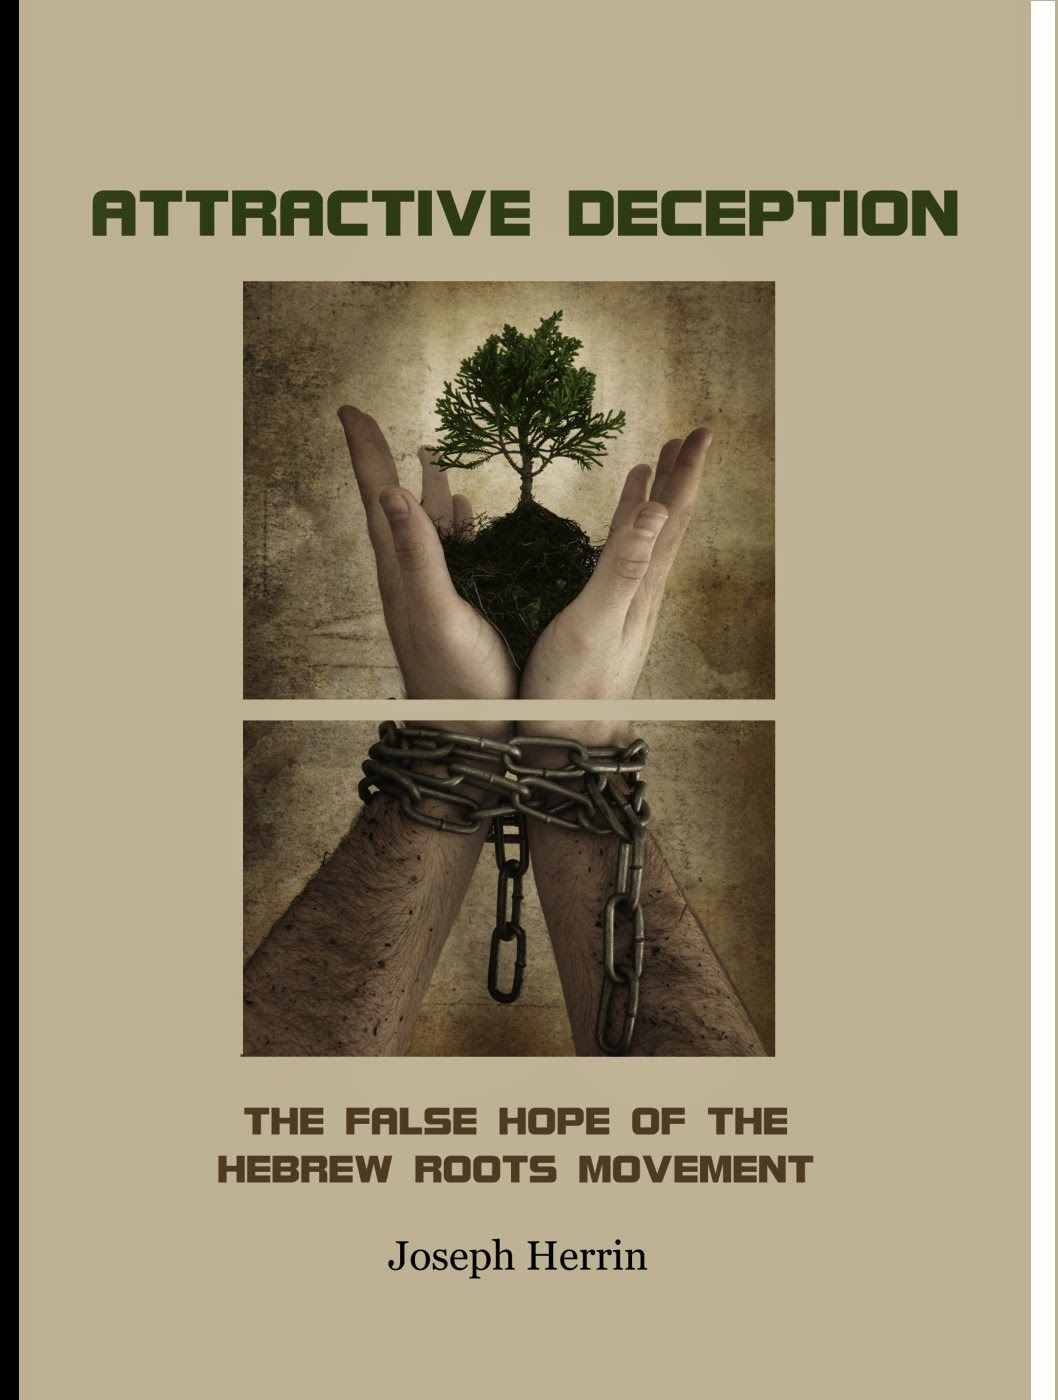 Attractive Deception – The False Hope of the Hebrew Roots Movement